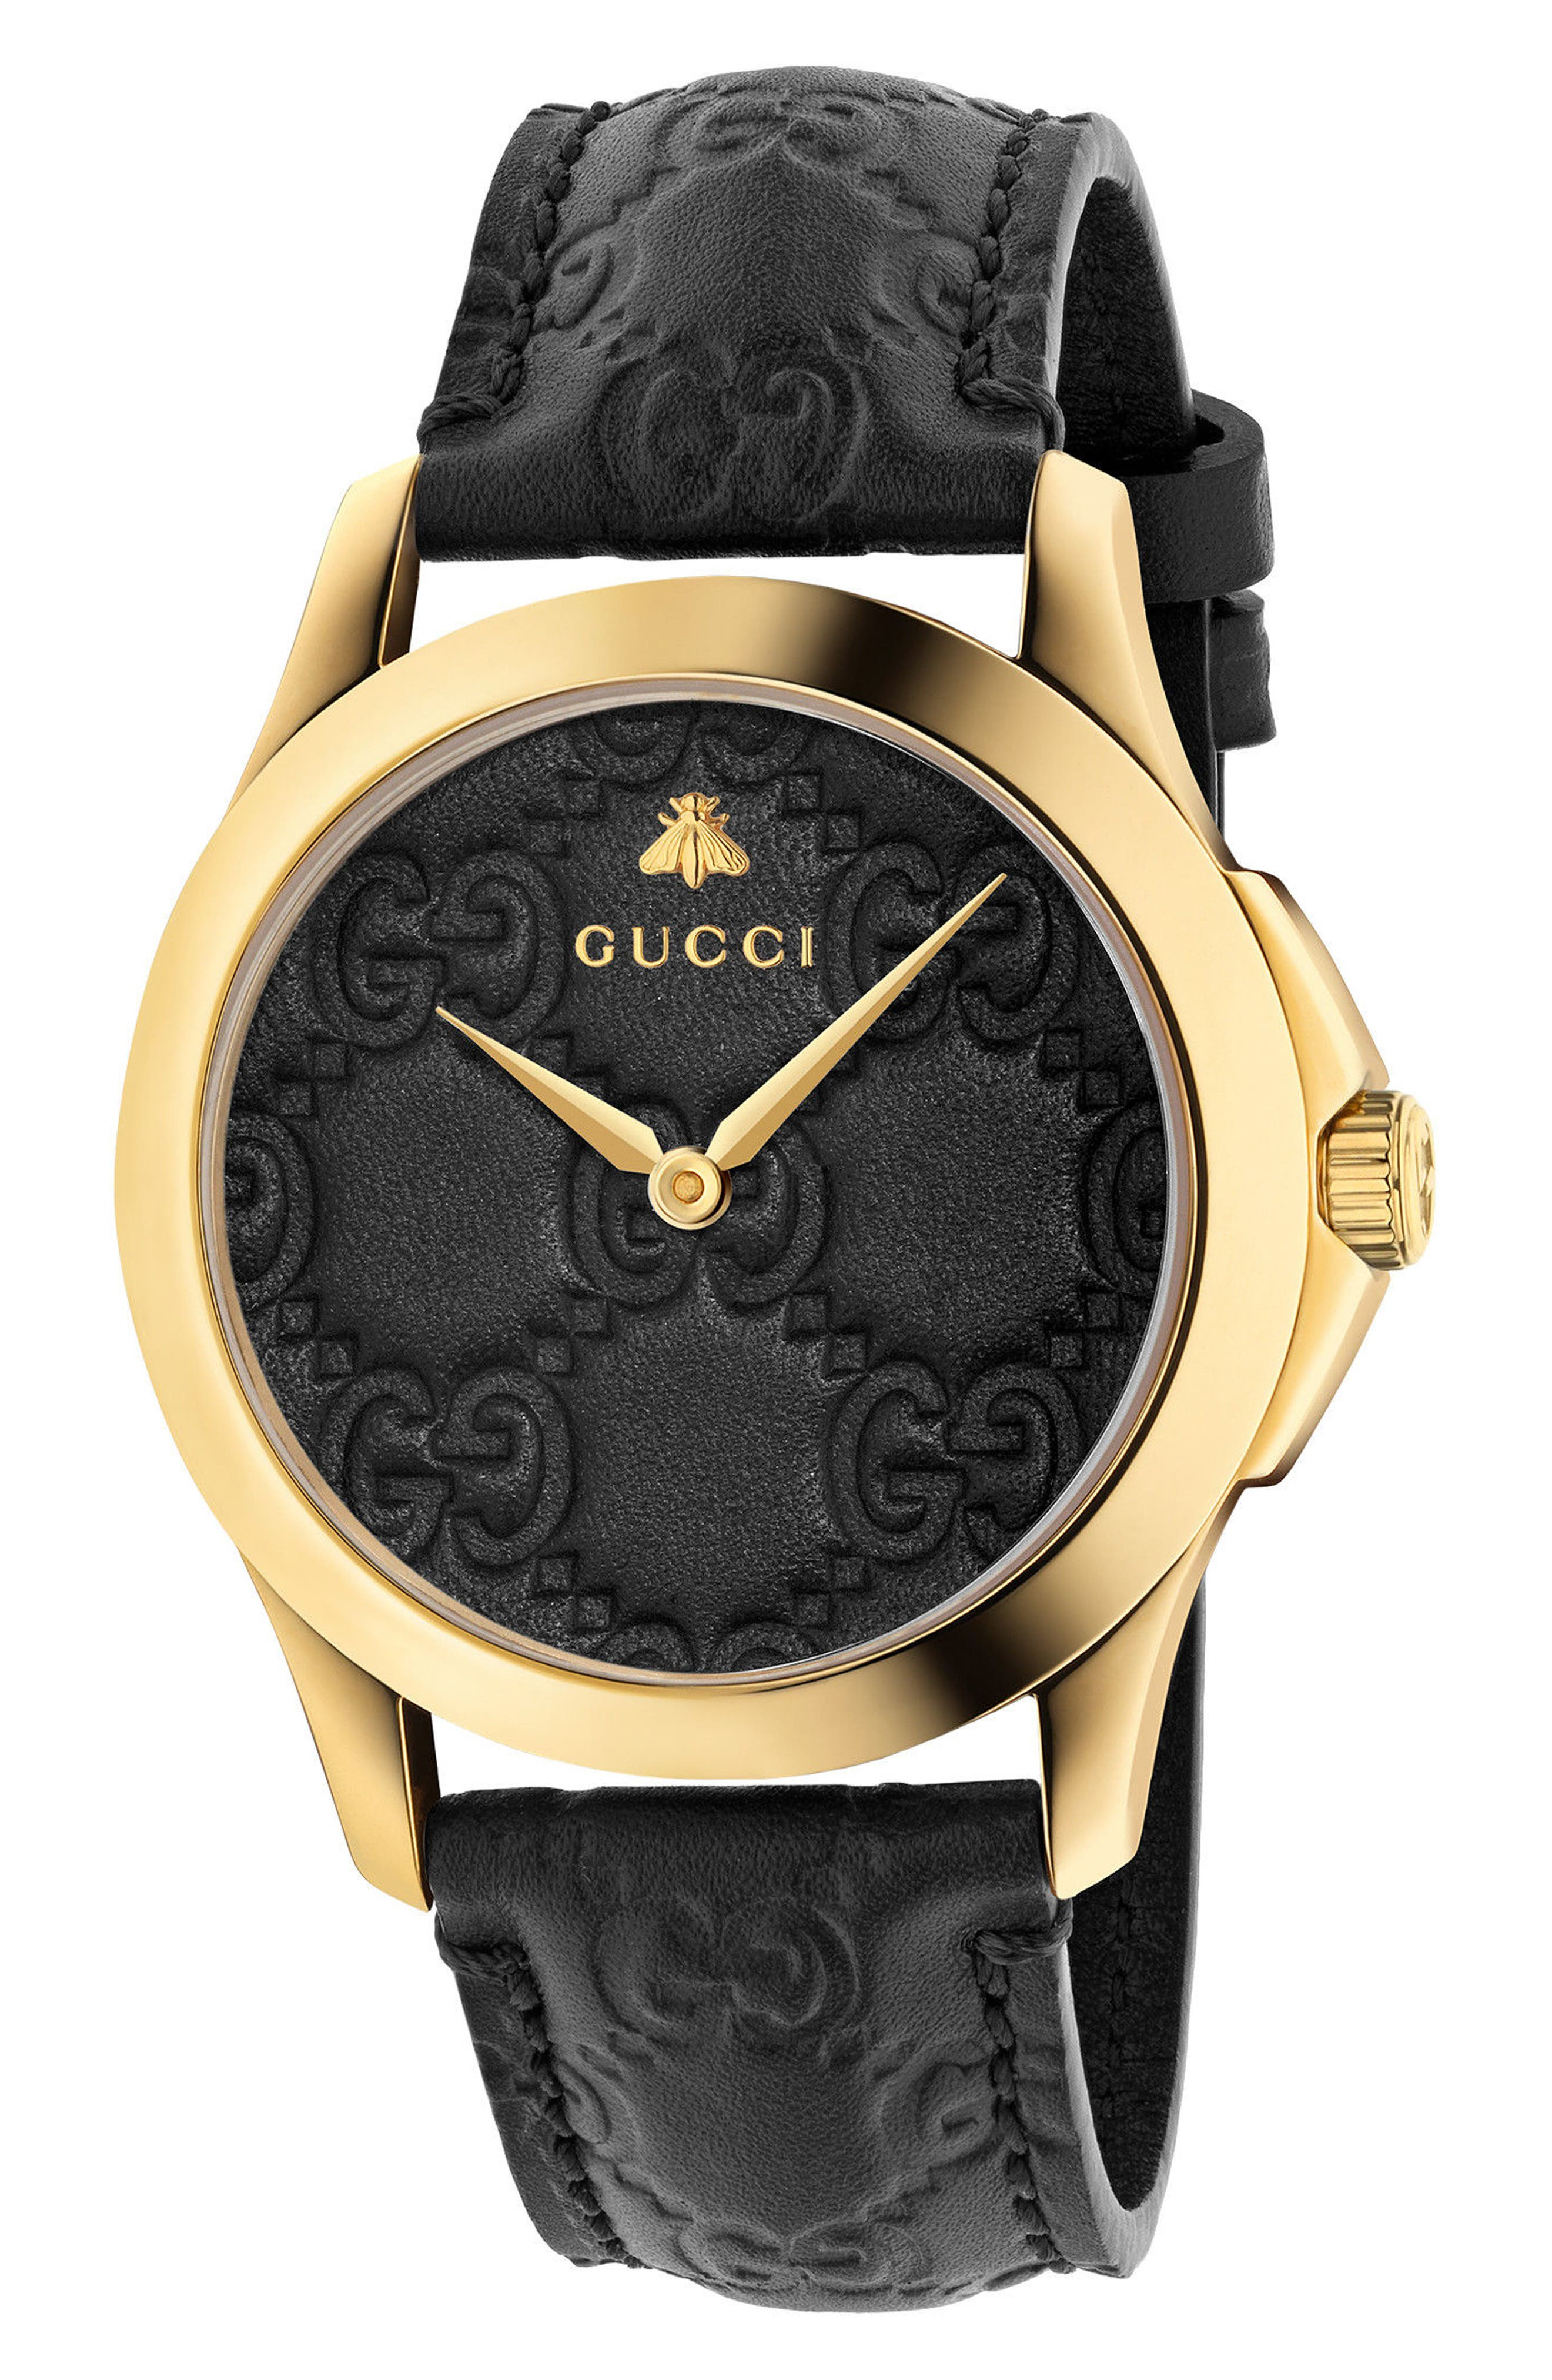 GUCCI, G-Timeless Leather Strap Watch, 38mm, Main thumbnail 1, color, BLACK/ GOLD